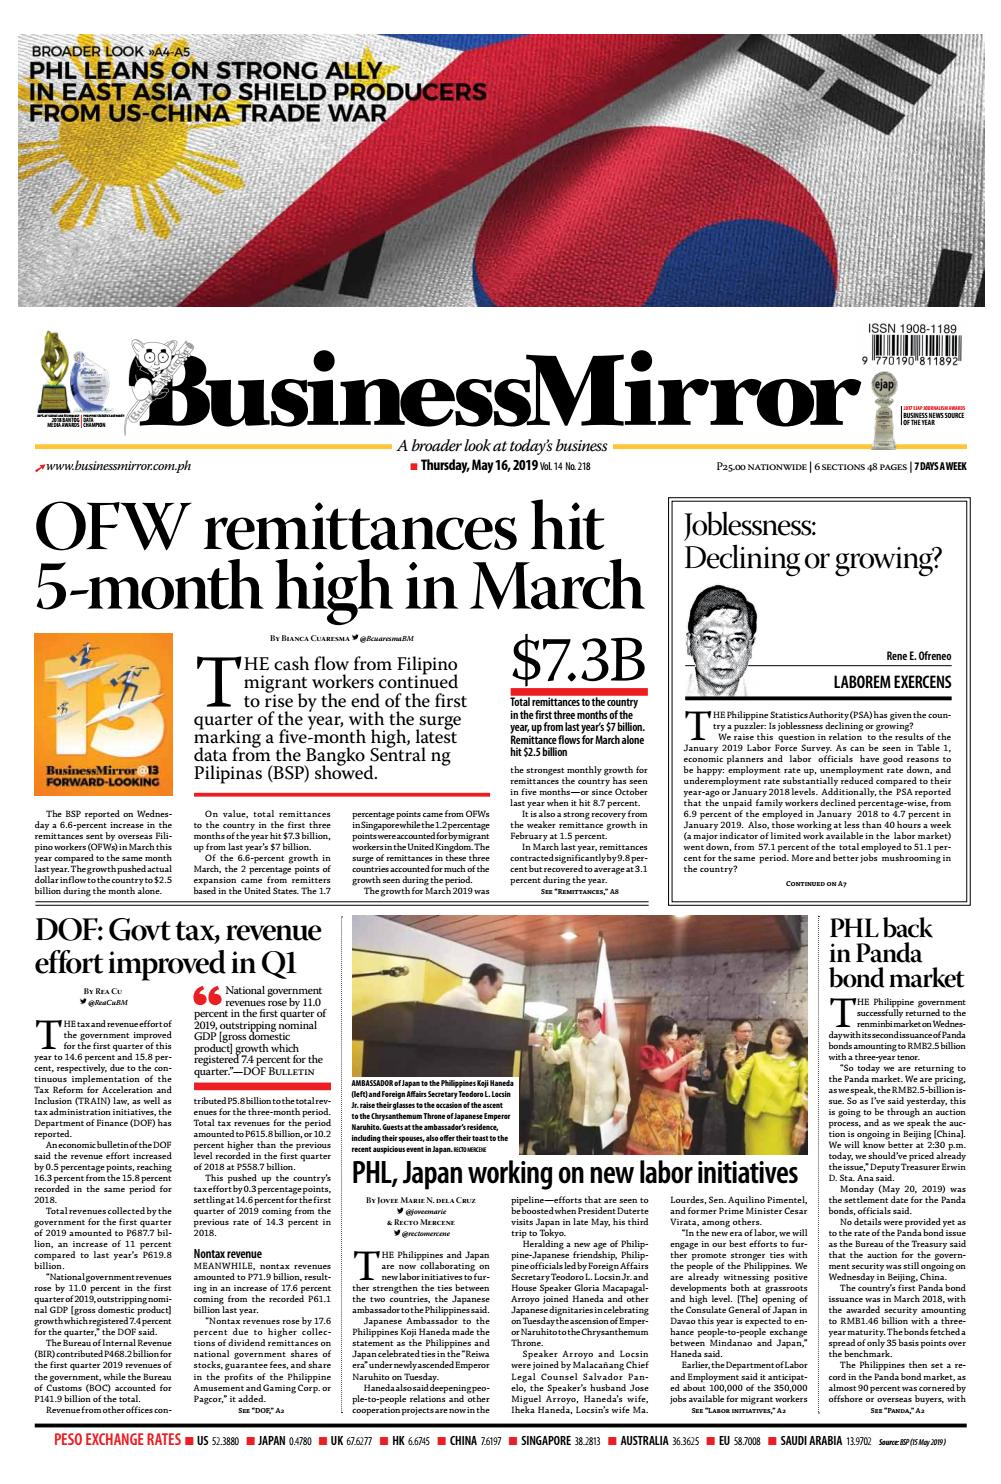 BusinessMirror May 16, 2019 by BusinessMirror - issuu